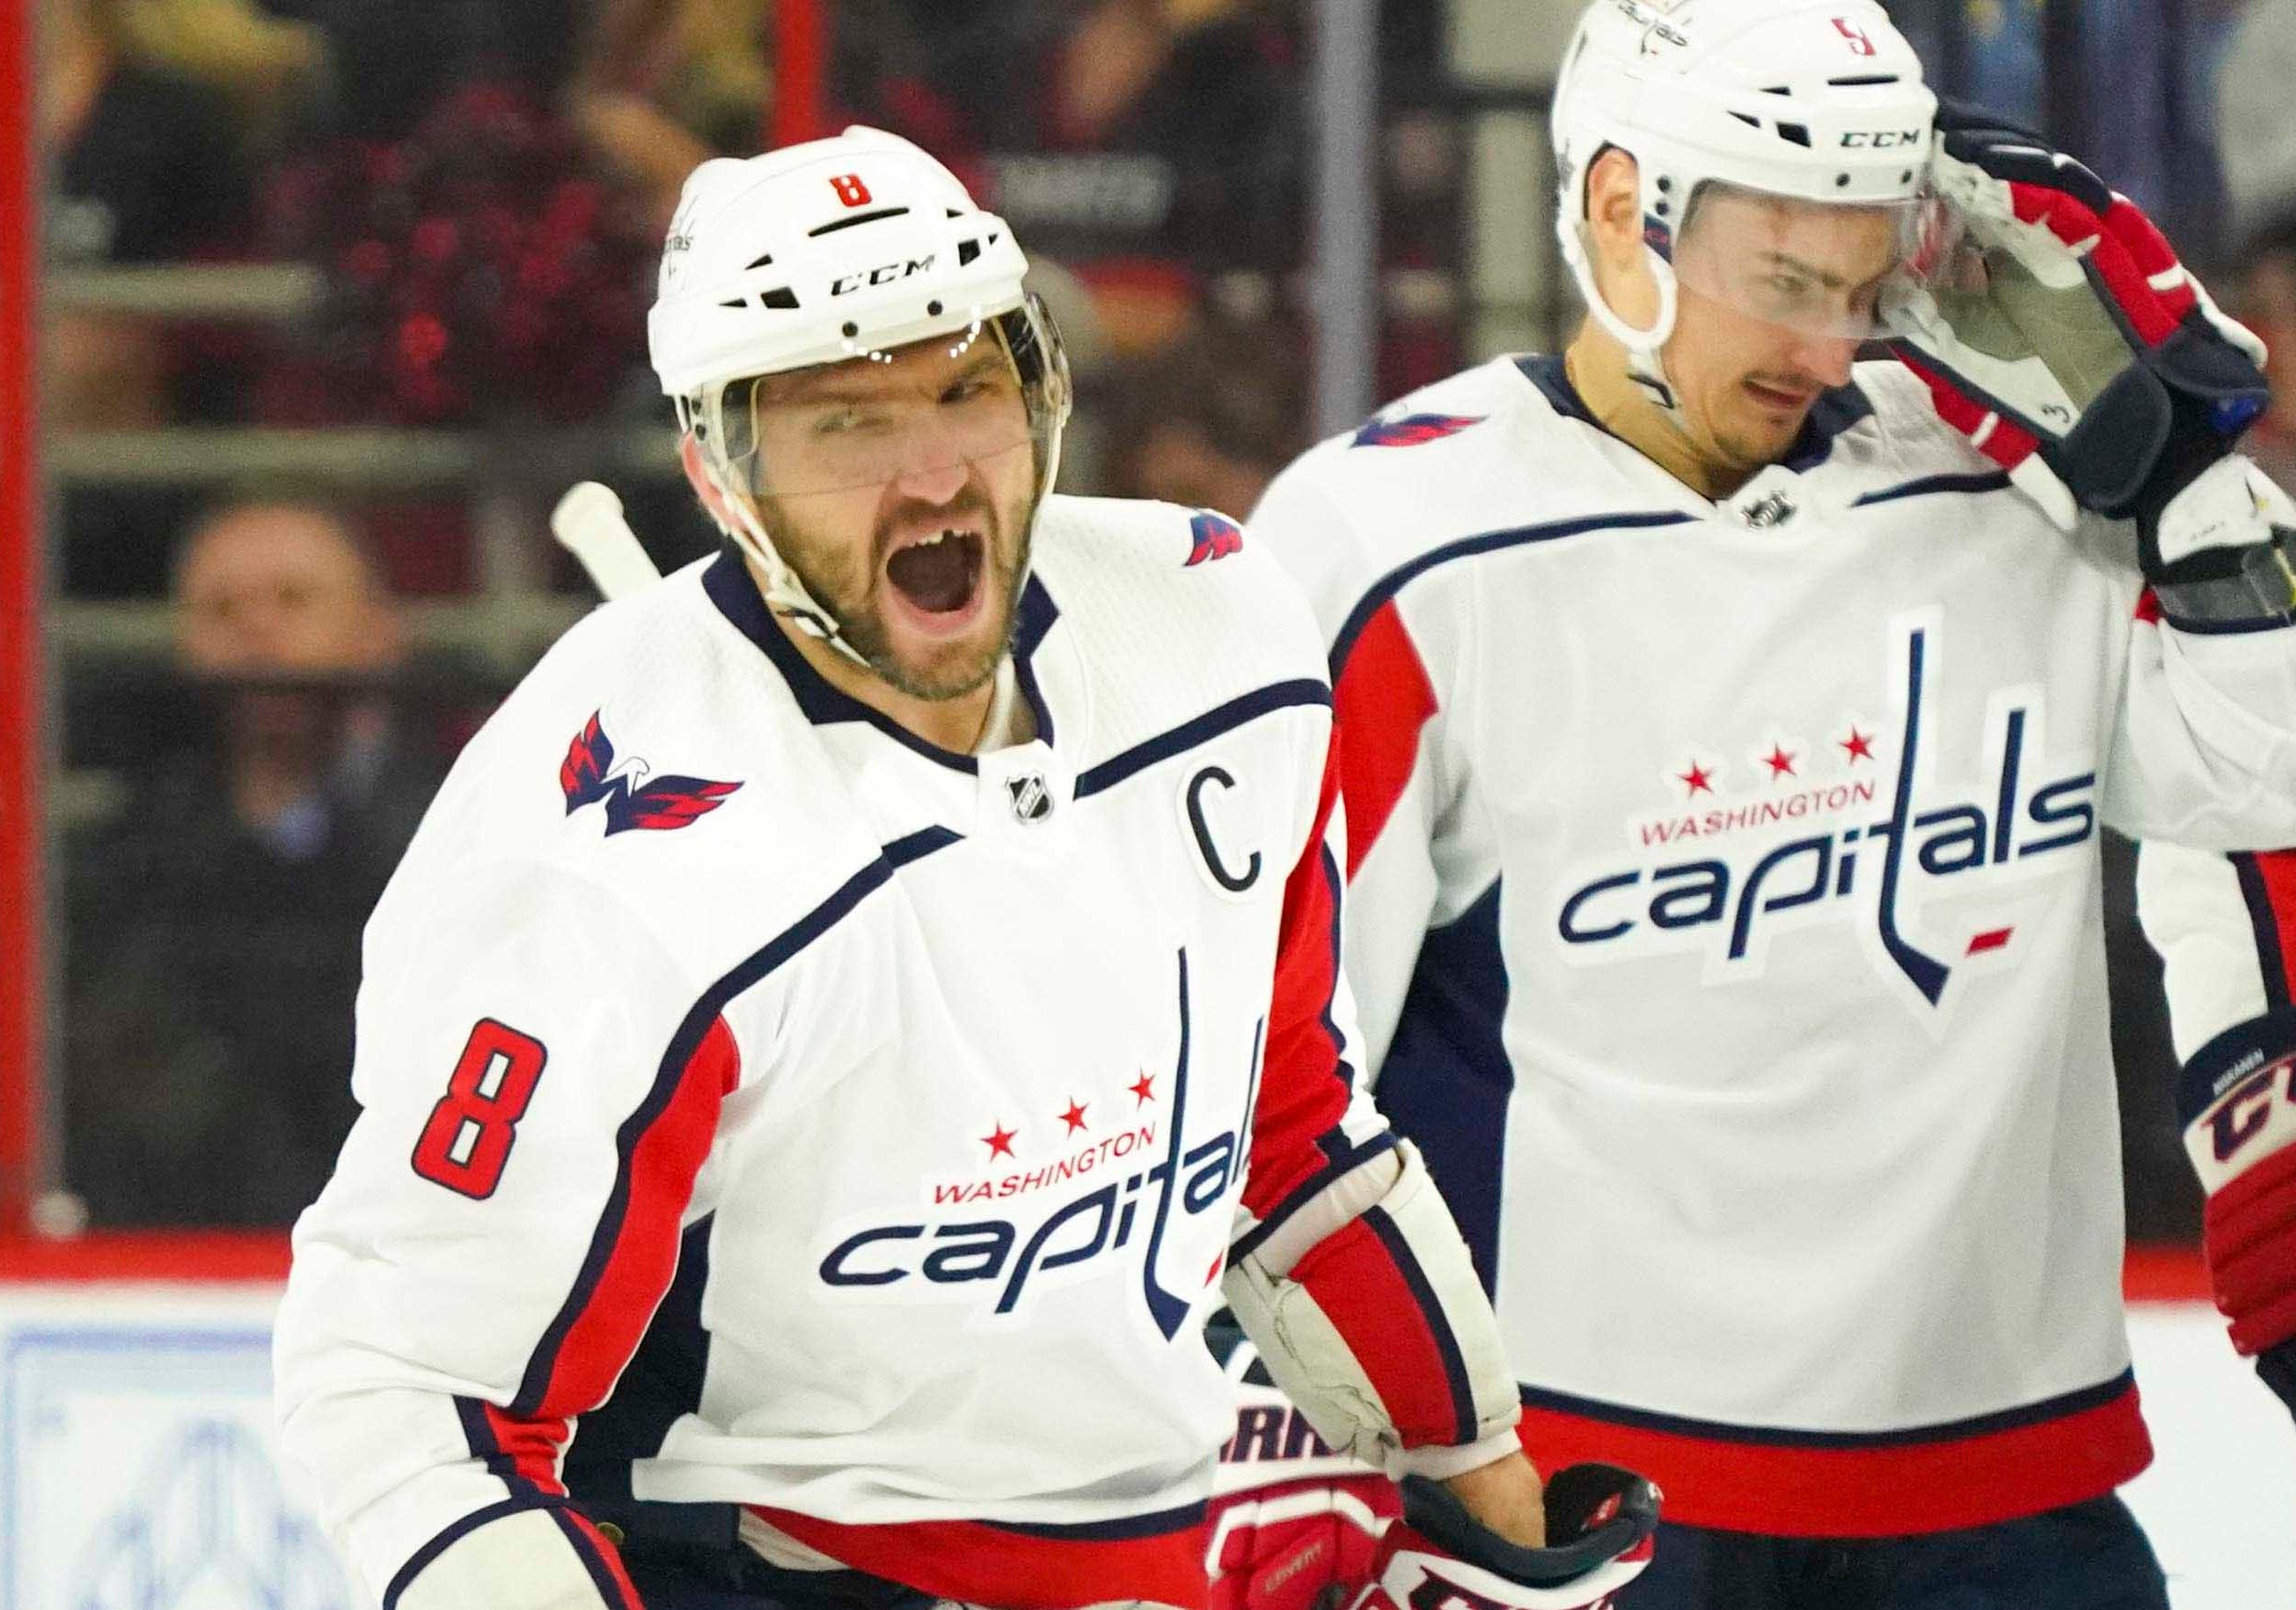 First round: Capitals star Alex Ovechkin celebrates his first-period goal against the Hurricanes. But his third-period tying goal was waved off, and Carolina won 5-2 in Game 6.